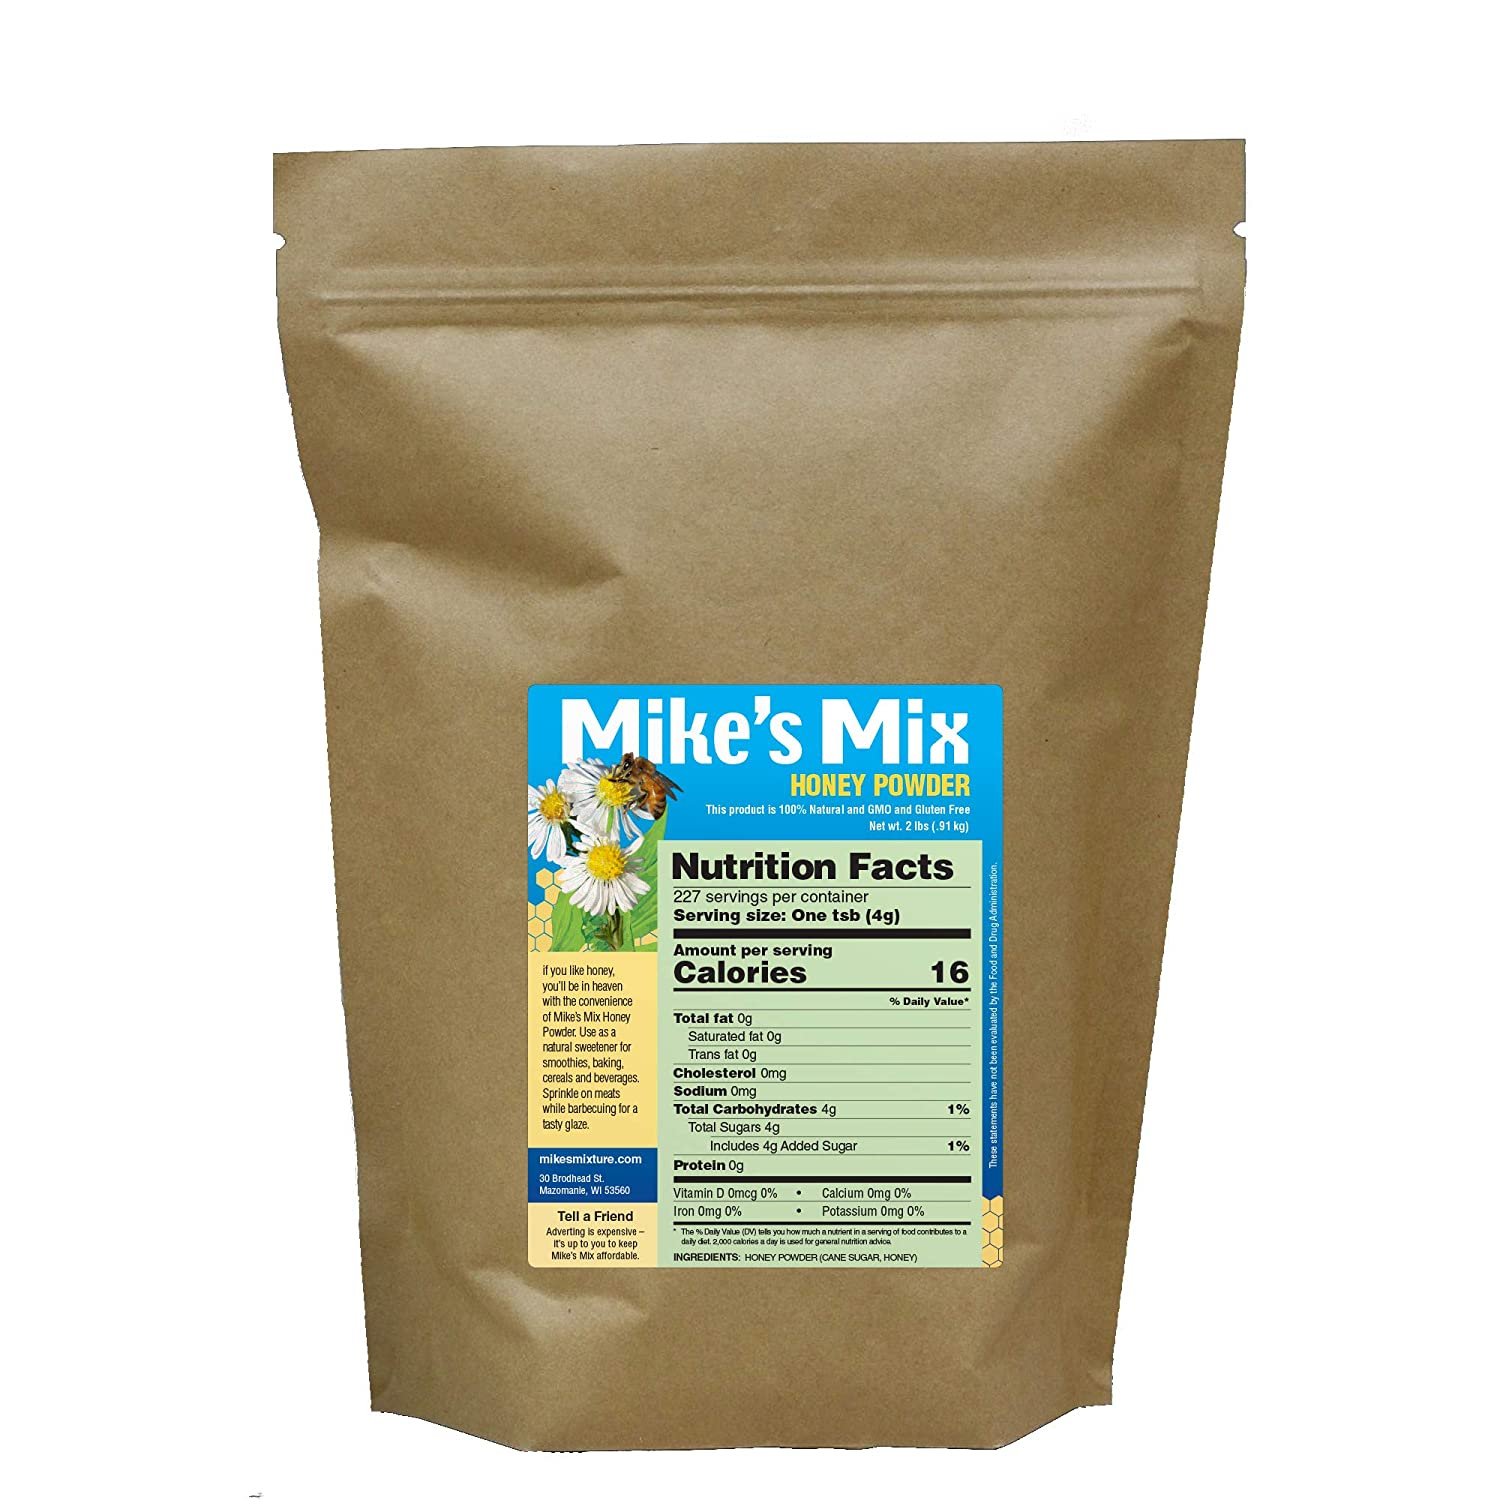 Mike's Mix Honey Powder, 2lb. Natural, Dehydrated